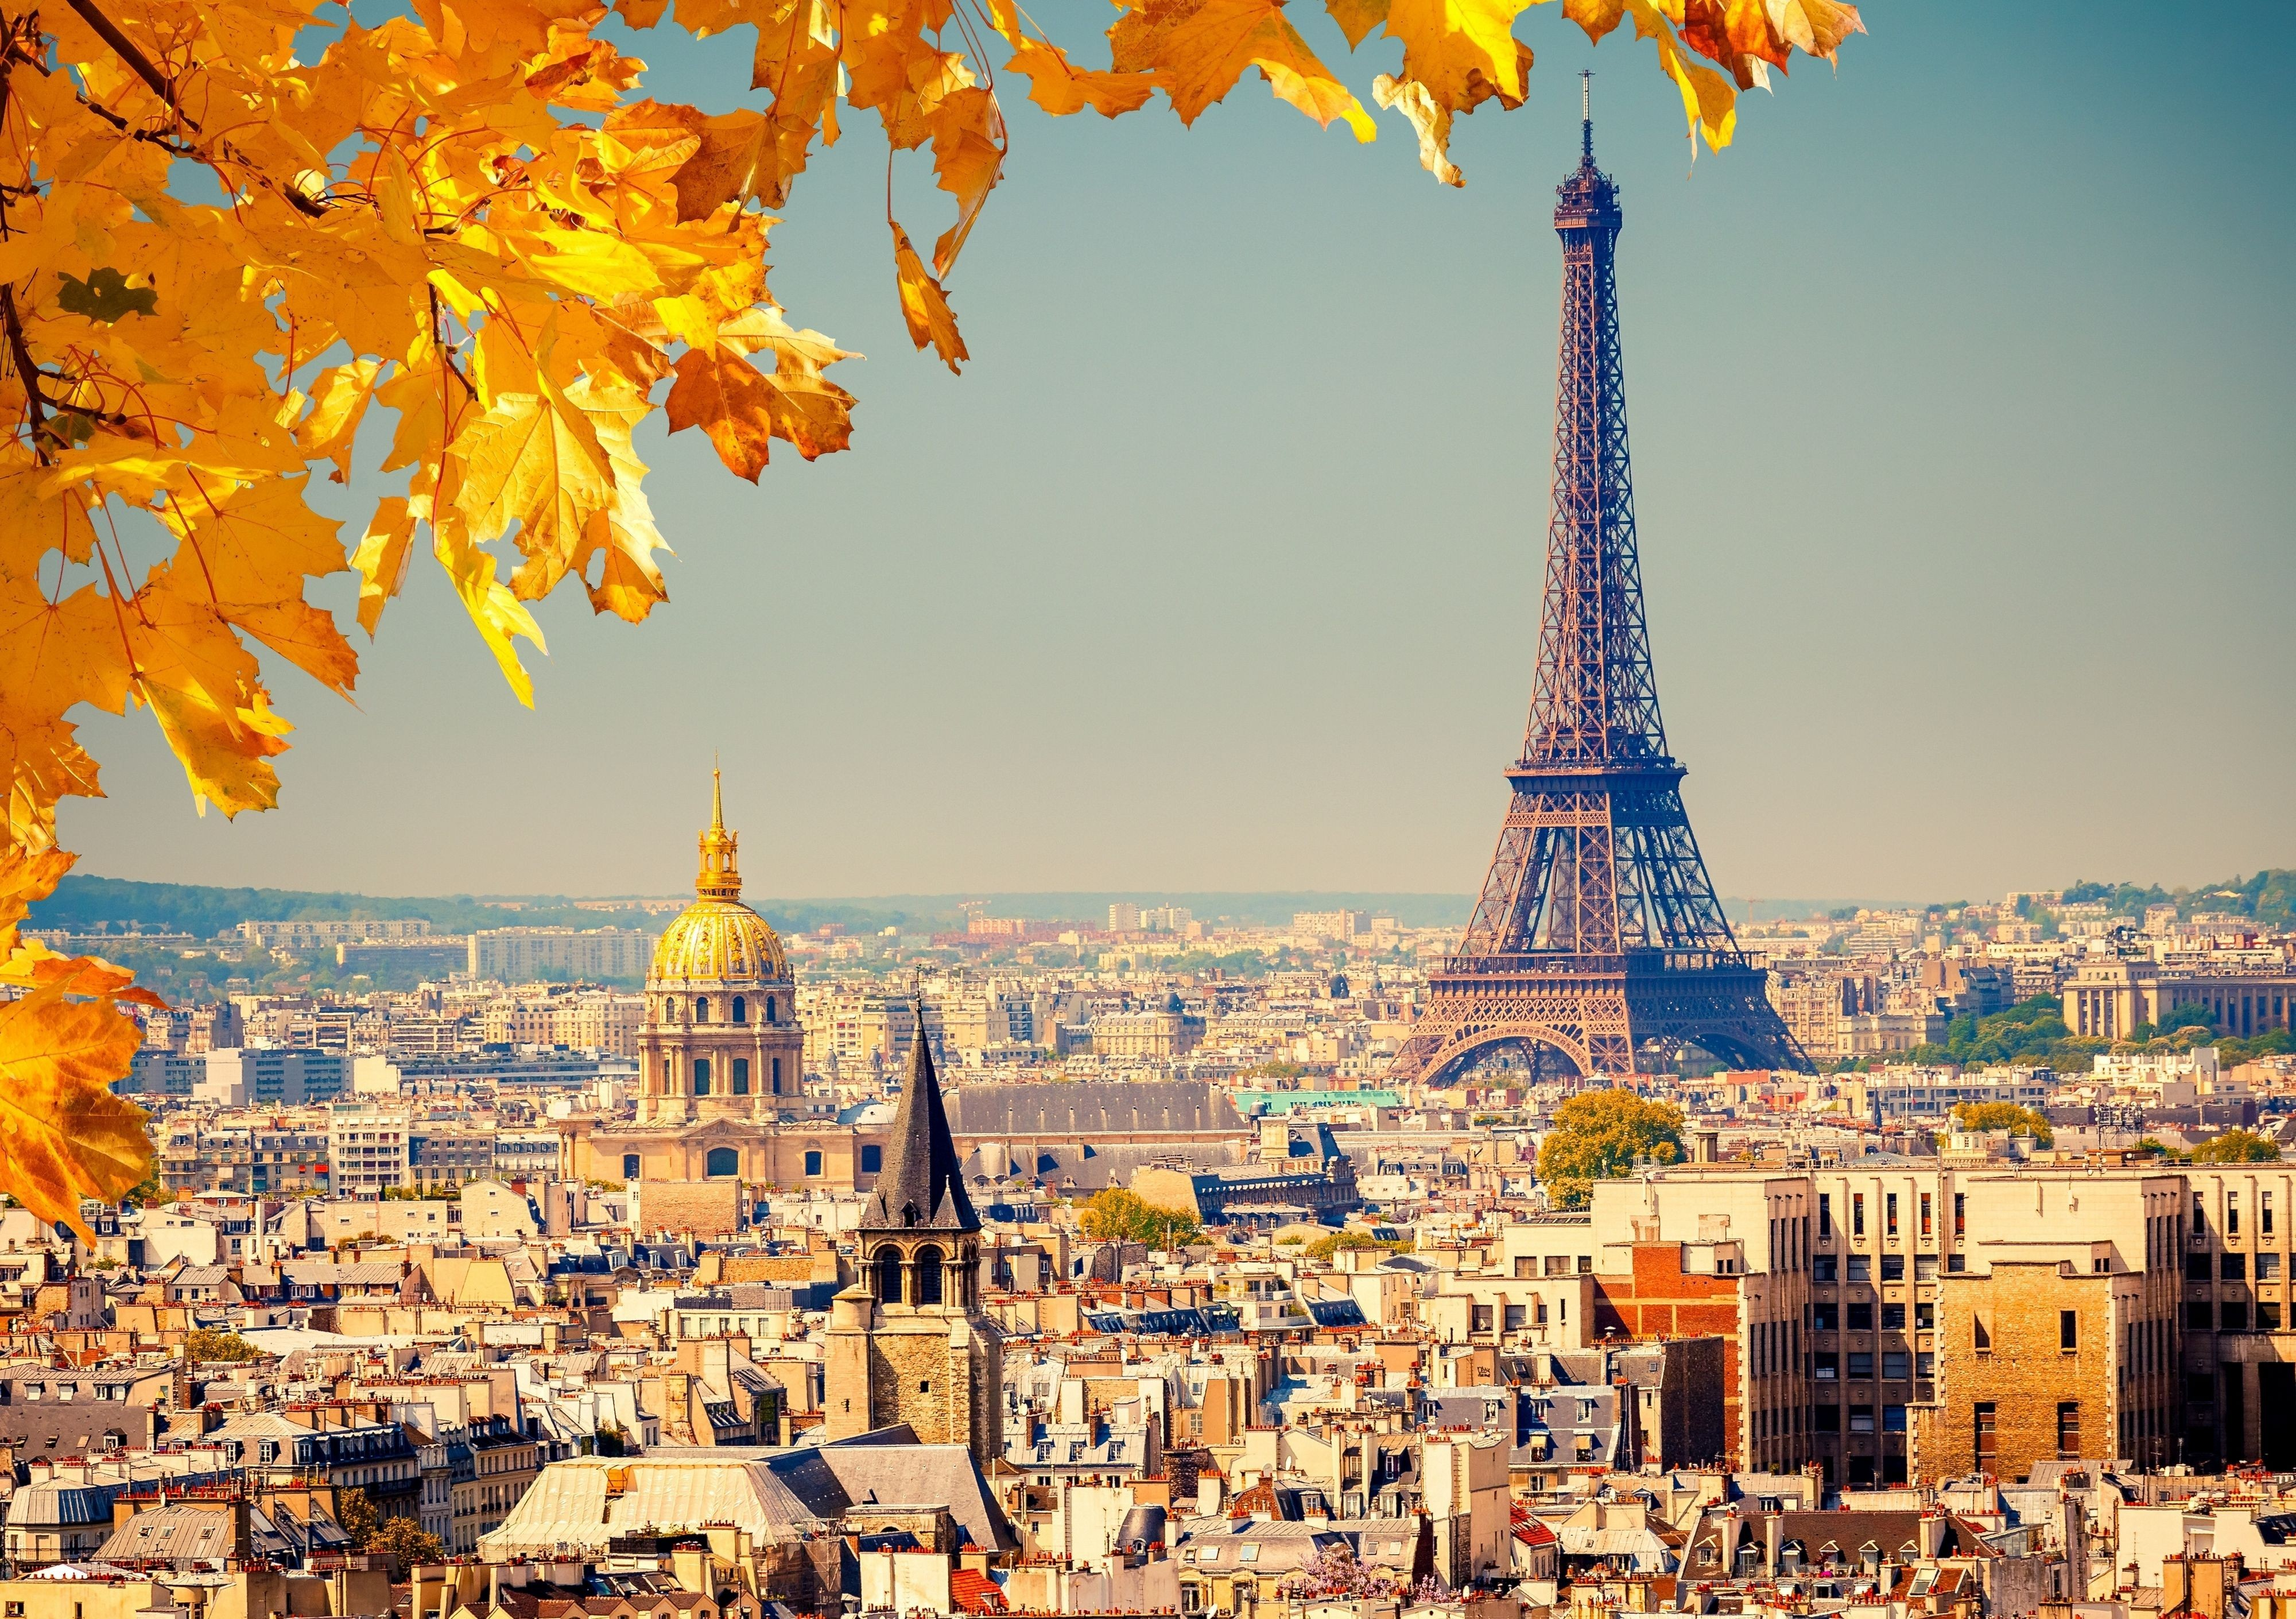 248 eiffel tower hd wallpapers background images wallpaper abyss hd wallpaper background image id546391 altavistaventures Gallery